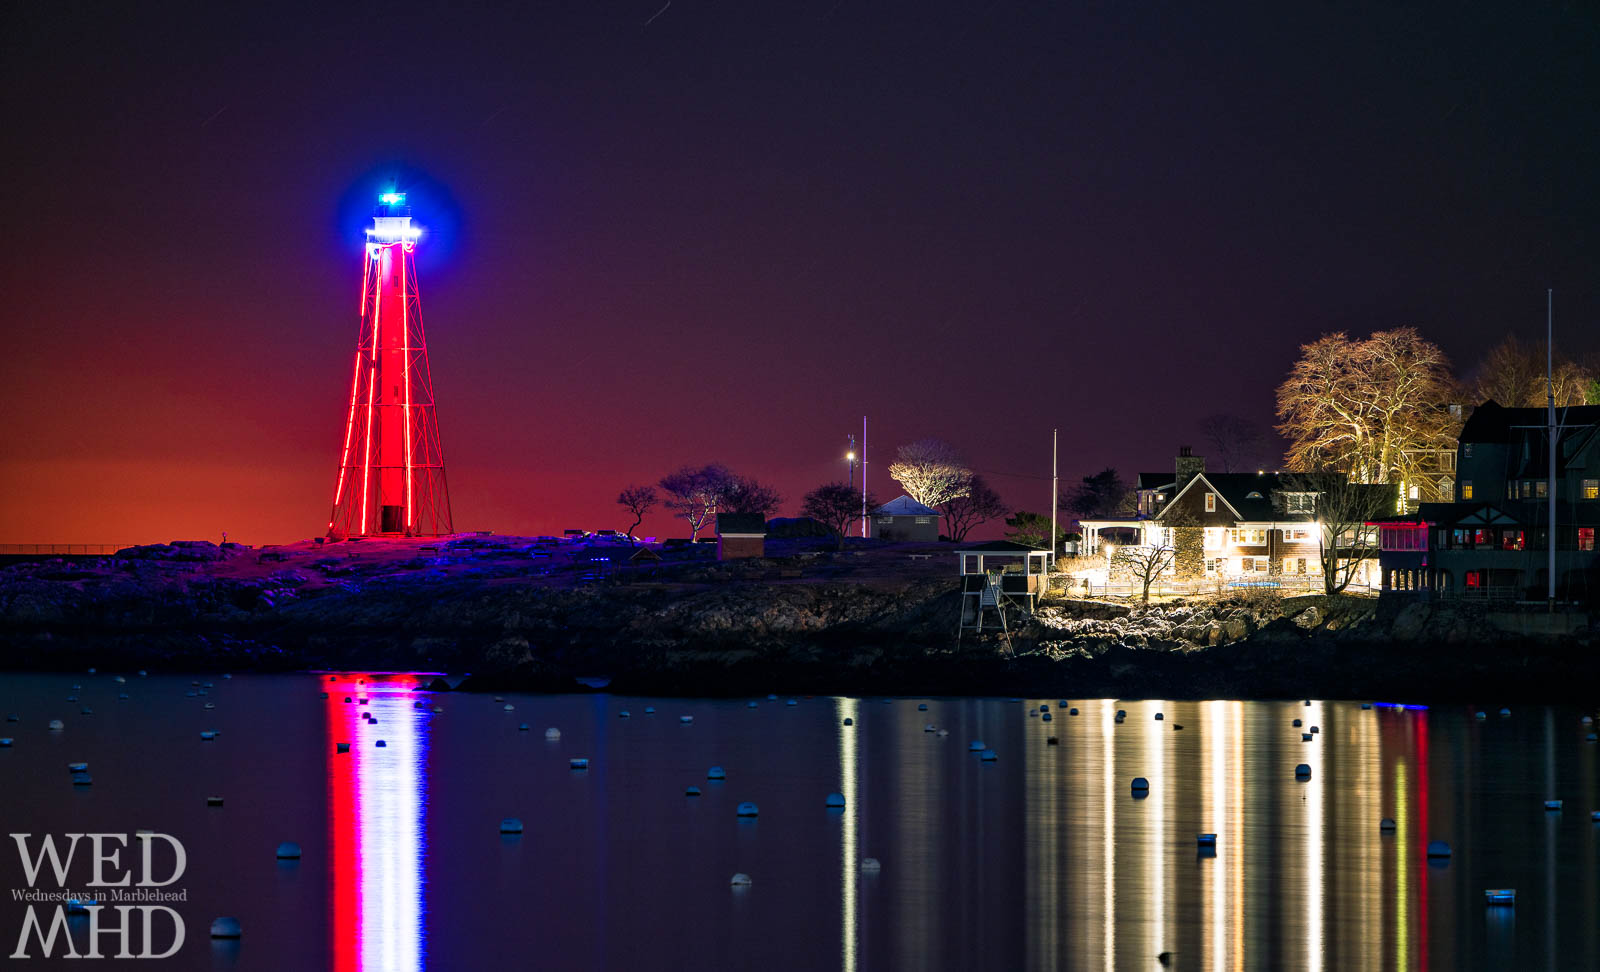 Marblehead Light appears as a shining red beacon in the night illuminated by the lights draped across its iron frame